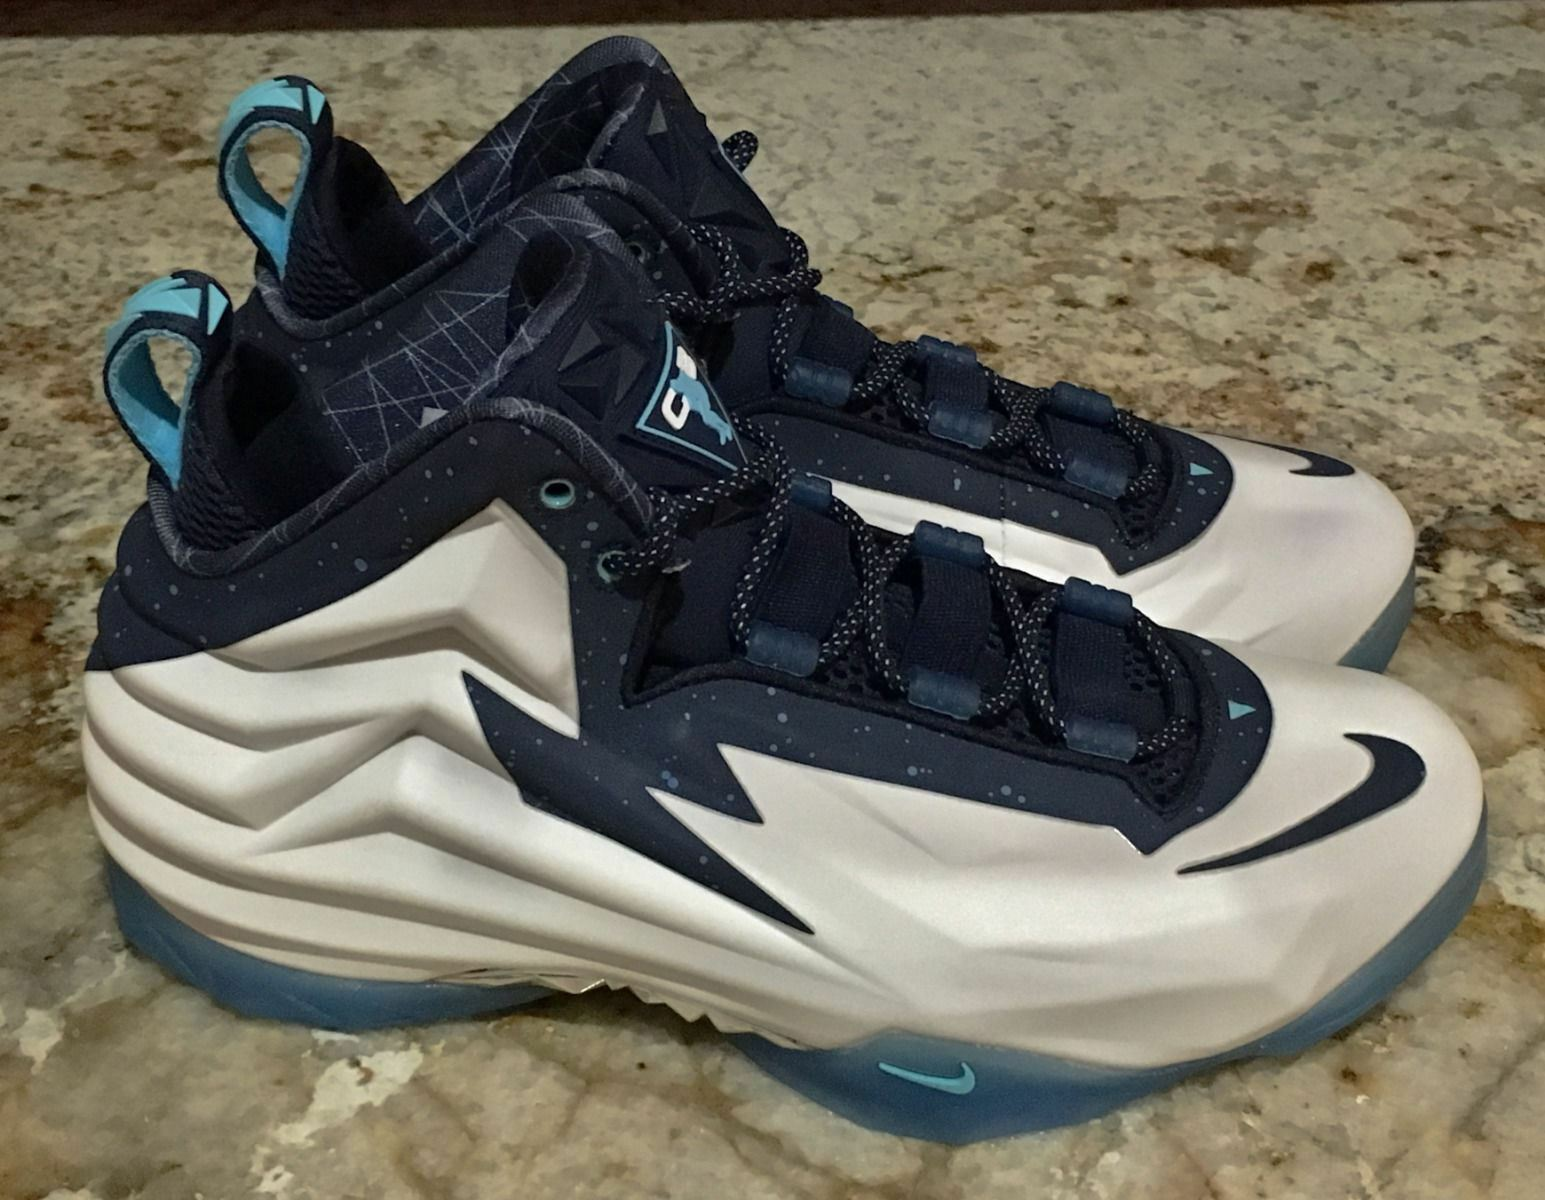 NIKE Chuck Posite White Navy bluee Basketball shoes Sneakers Mens 6.5 7 8.5 9 10